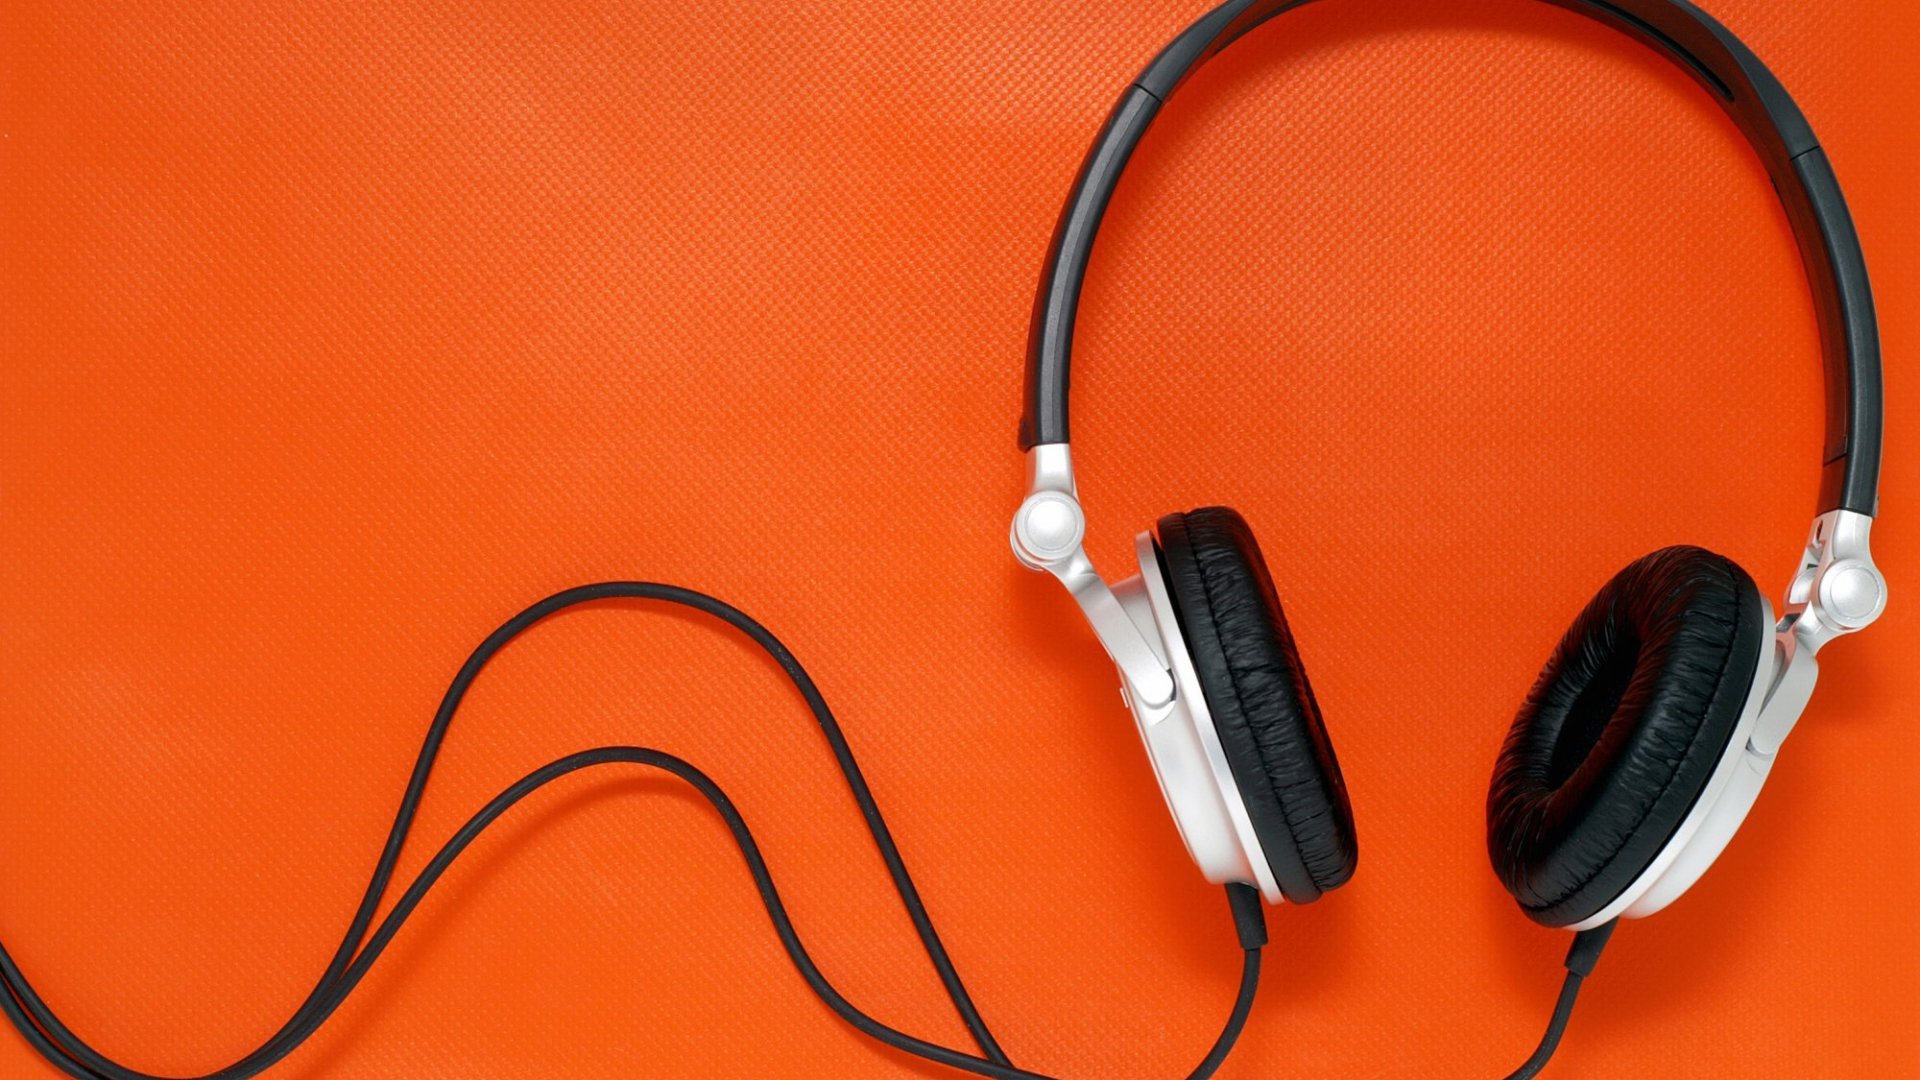 15 Podcasts You Should Be Listening to Every Week